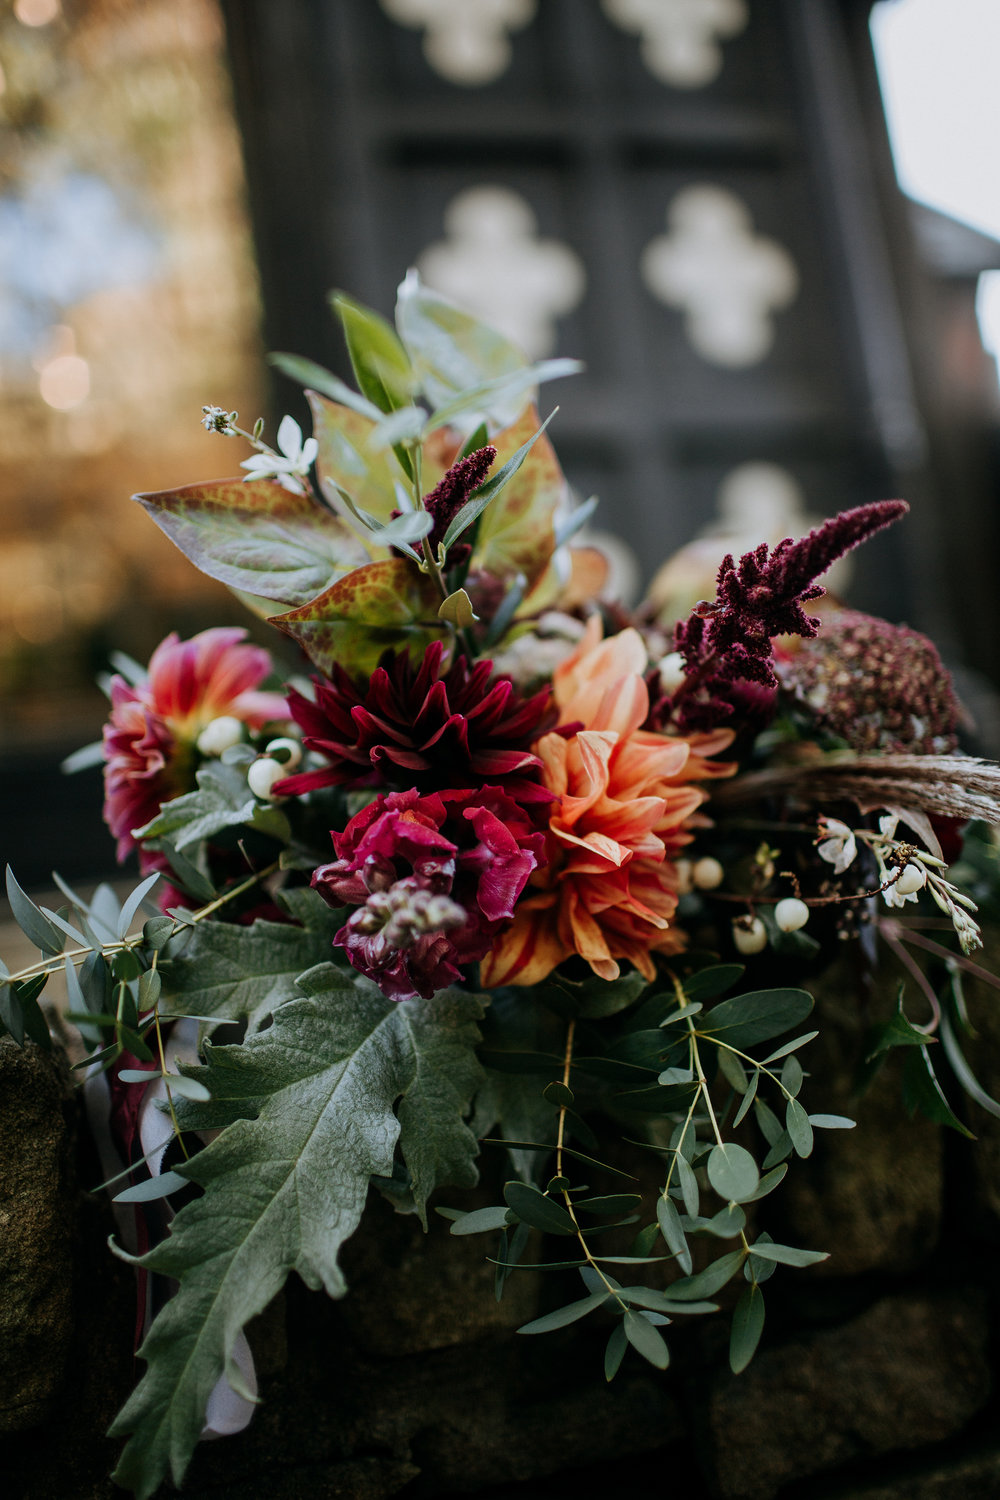 cumbria-wedding-florist.jpg